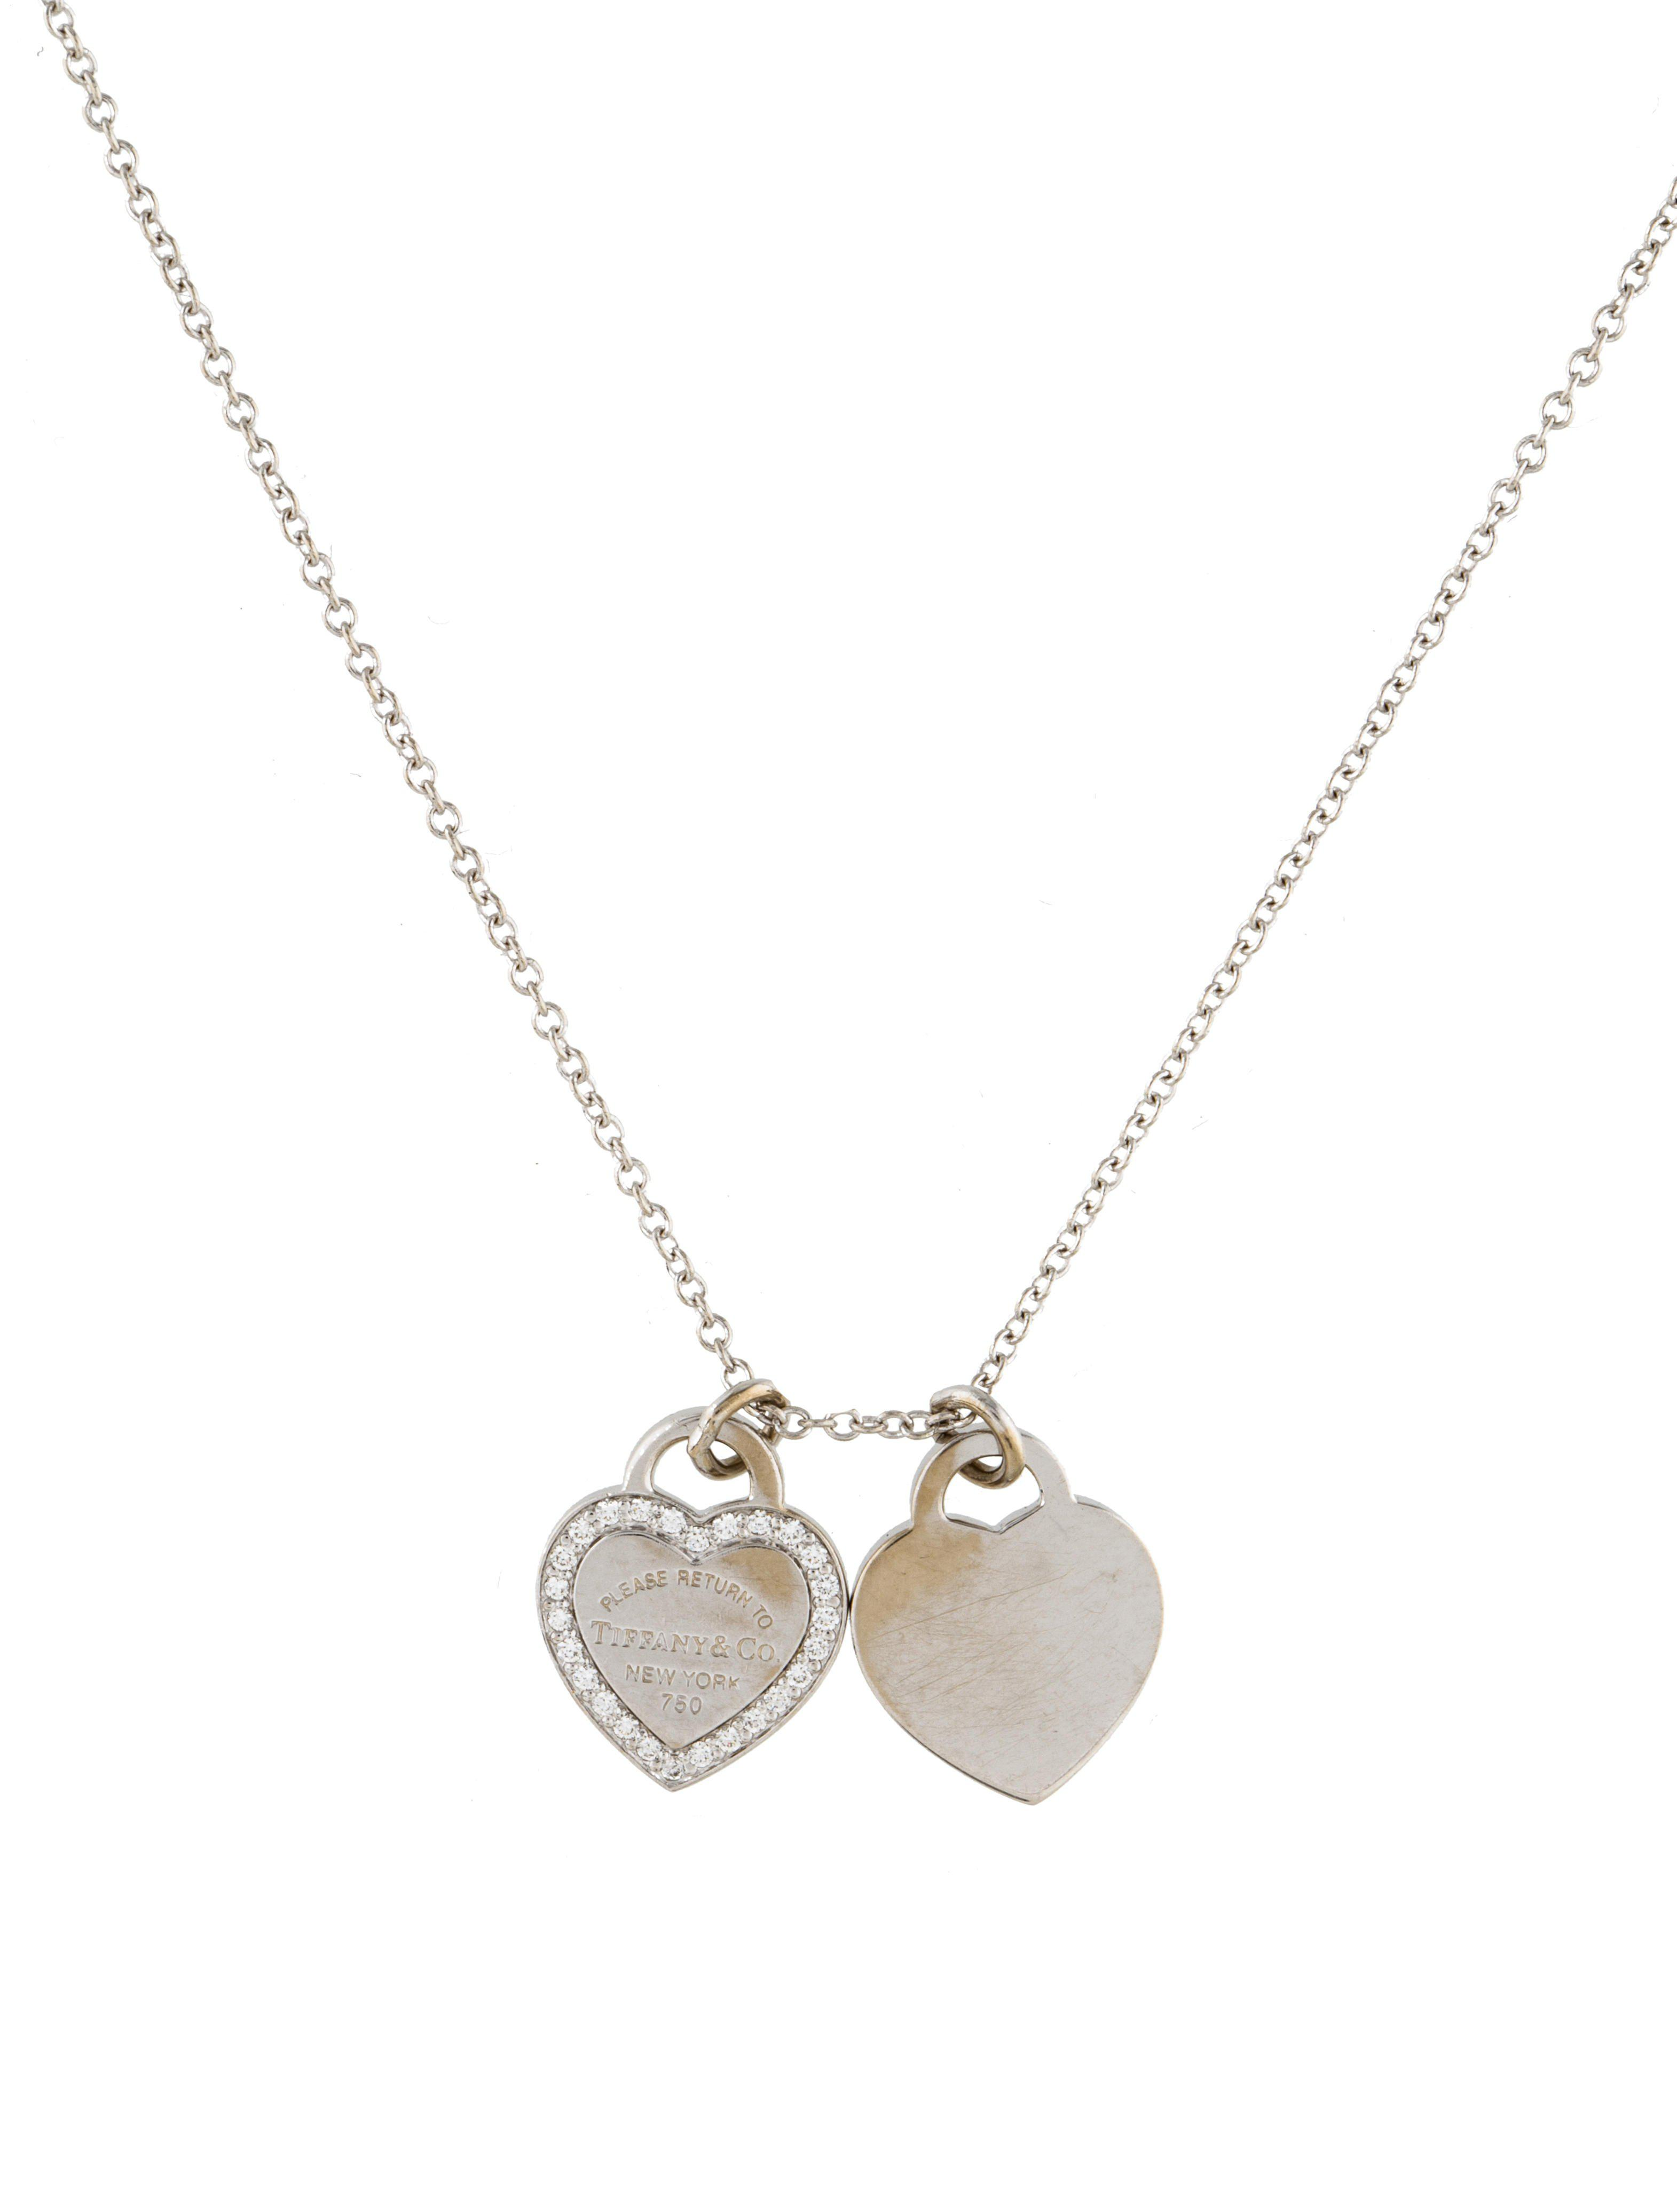 045bd78c530b Lyst - Tiffany   Co 18k Diamond Double Heart Tag Pendant Necklace ...